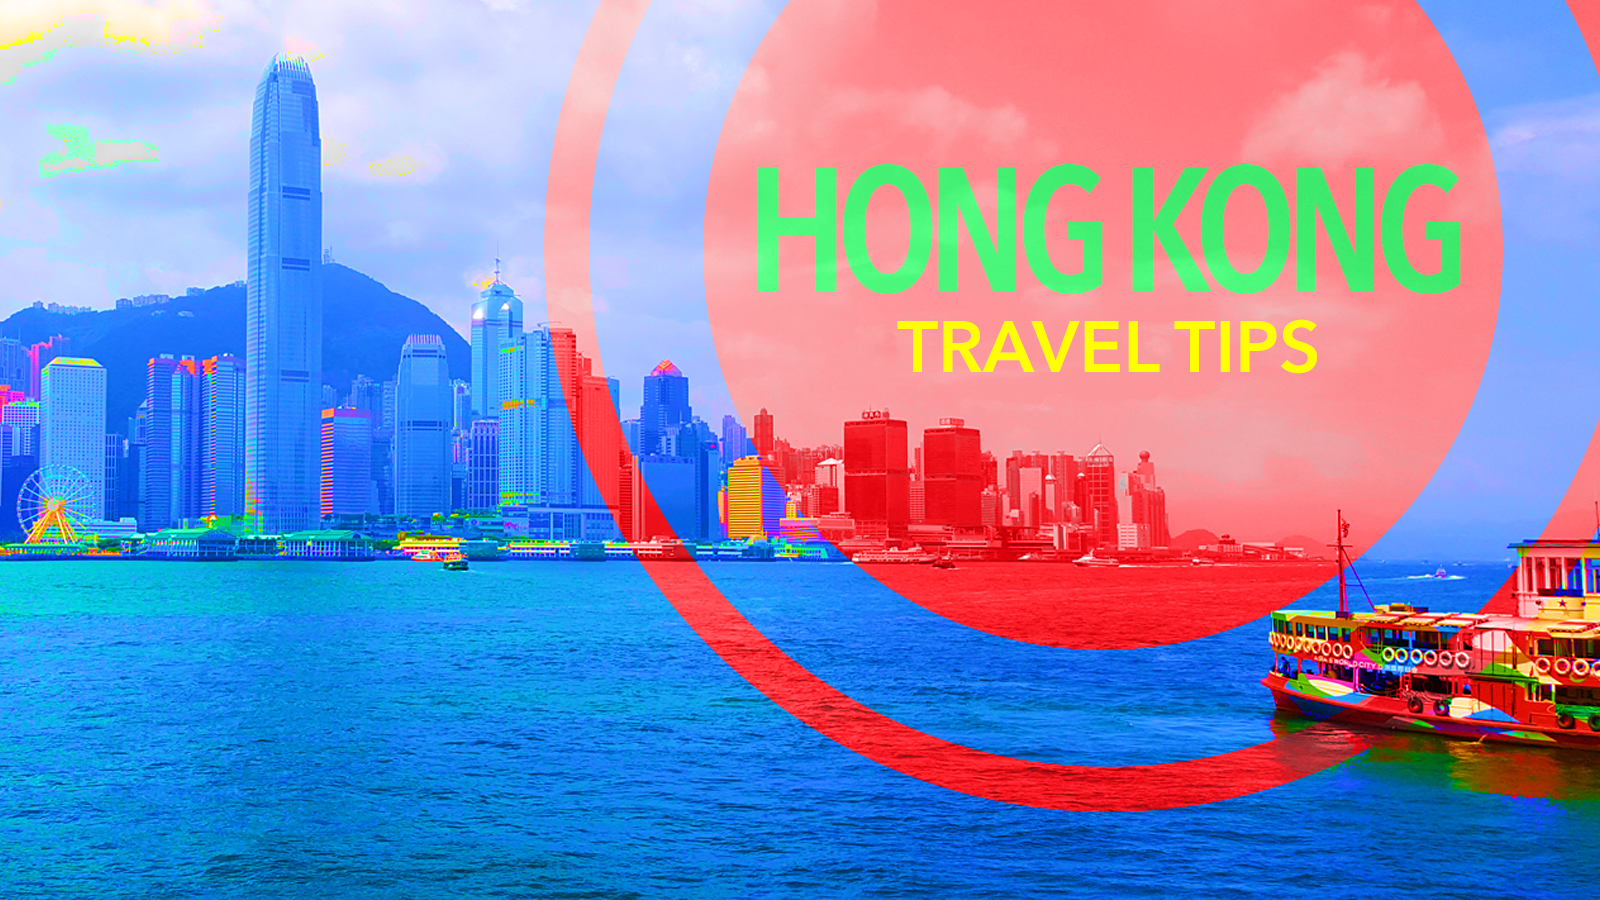 What to expect in Hong Kong, Travel Tips